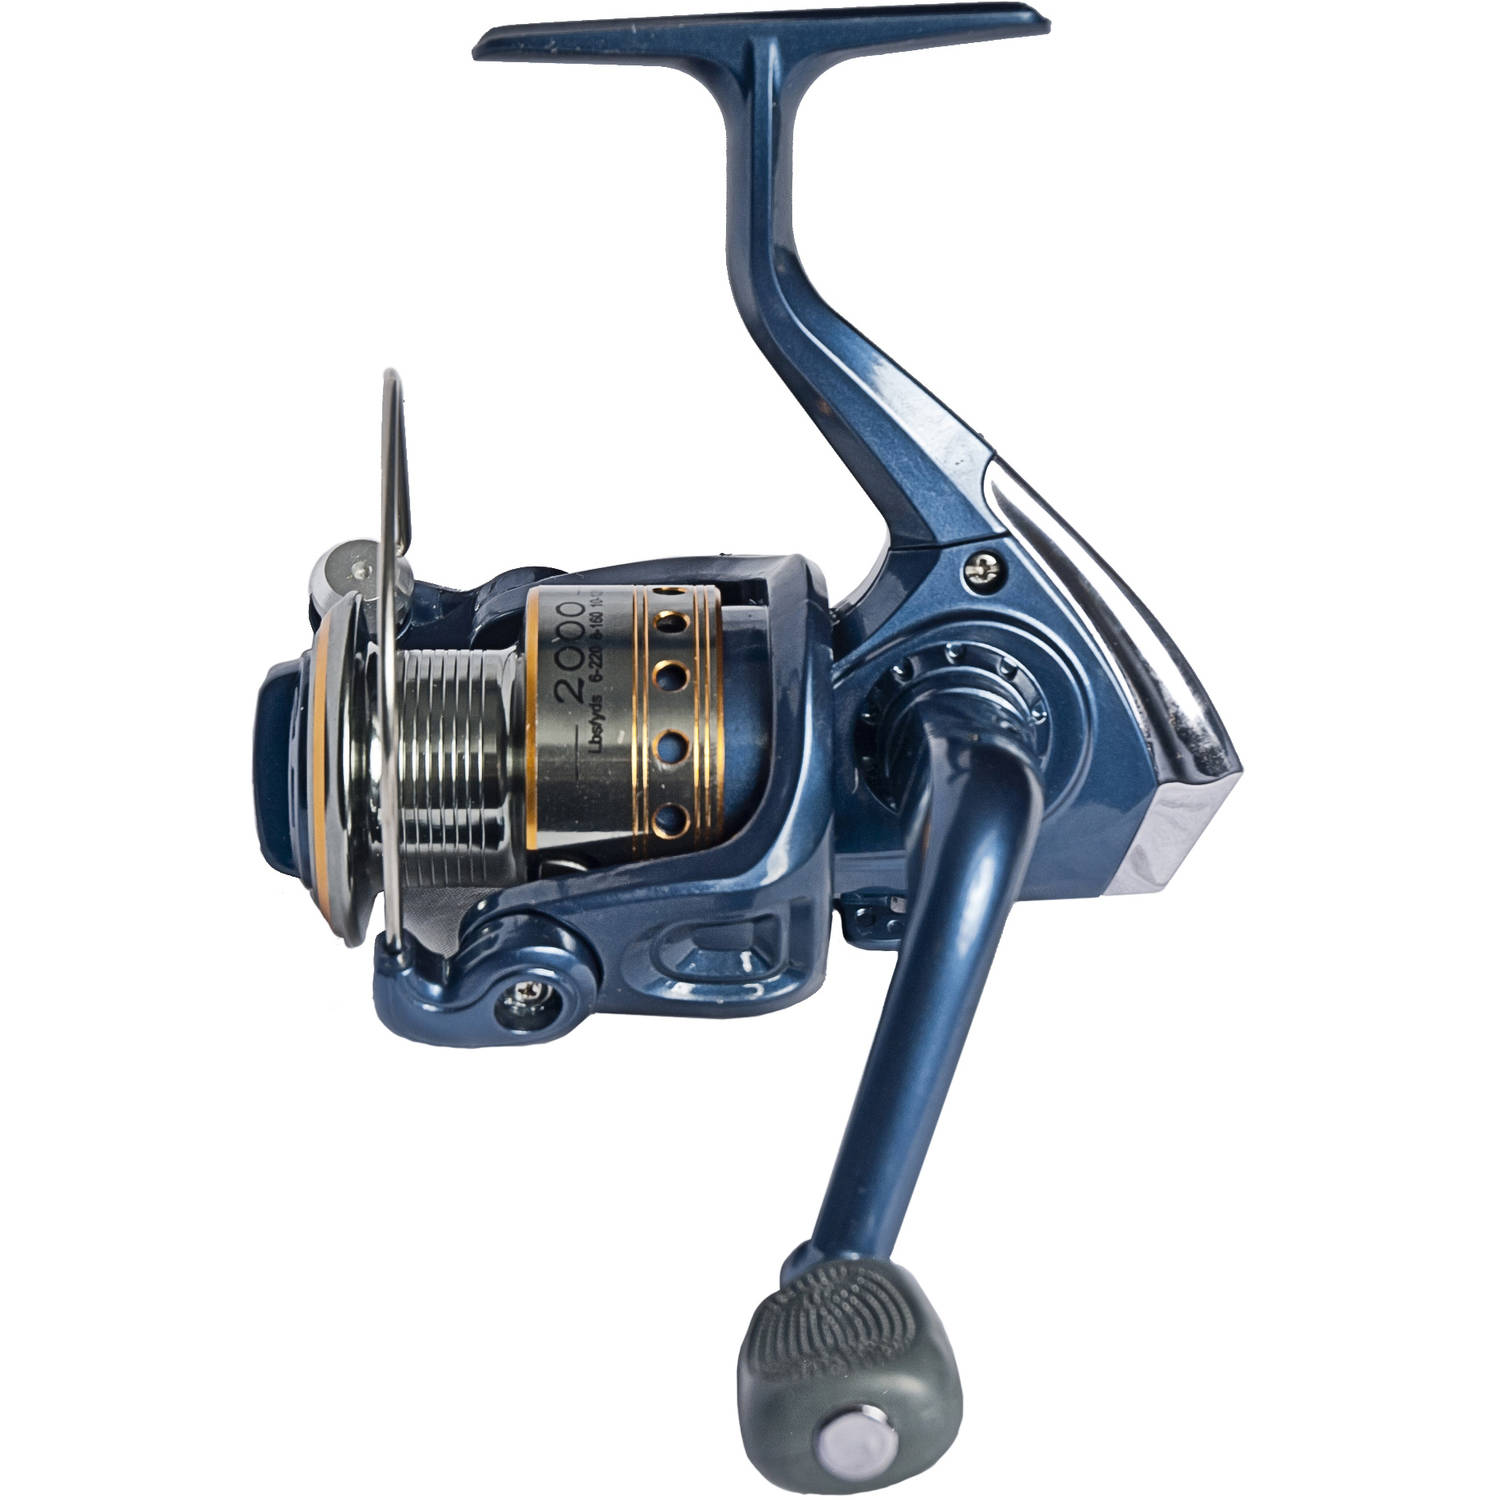 Outdoor angler spinning reel outdoor sports fishing for Best walmart fishing pole